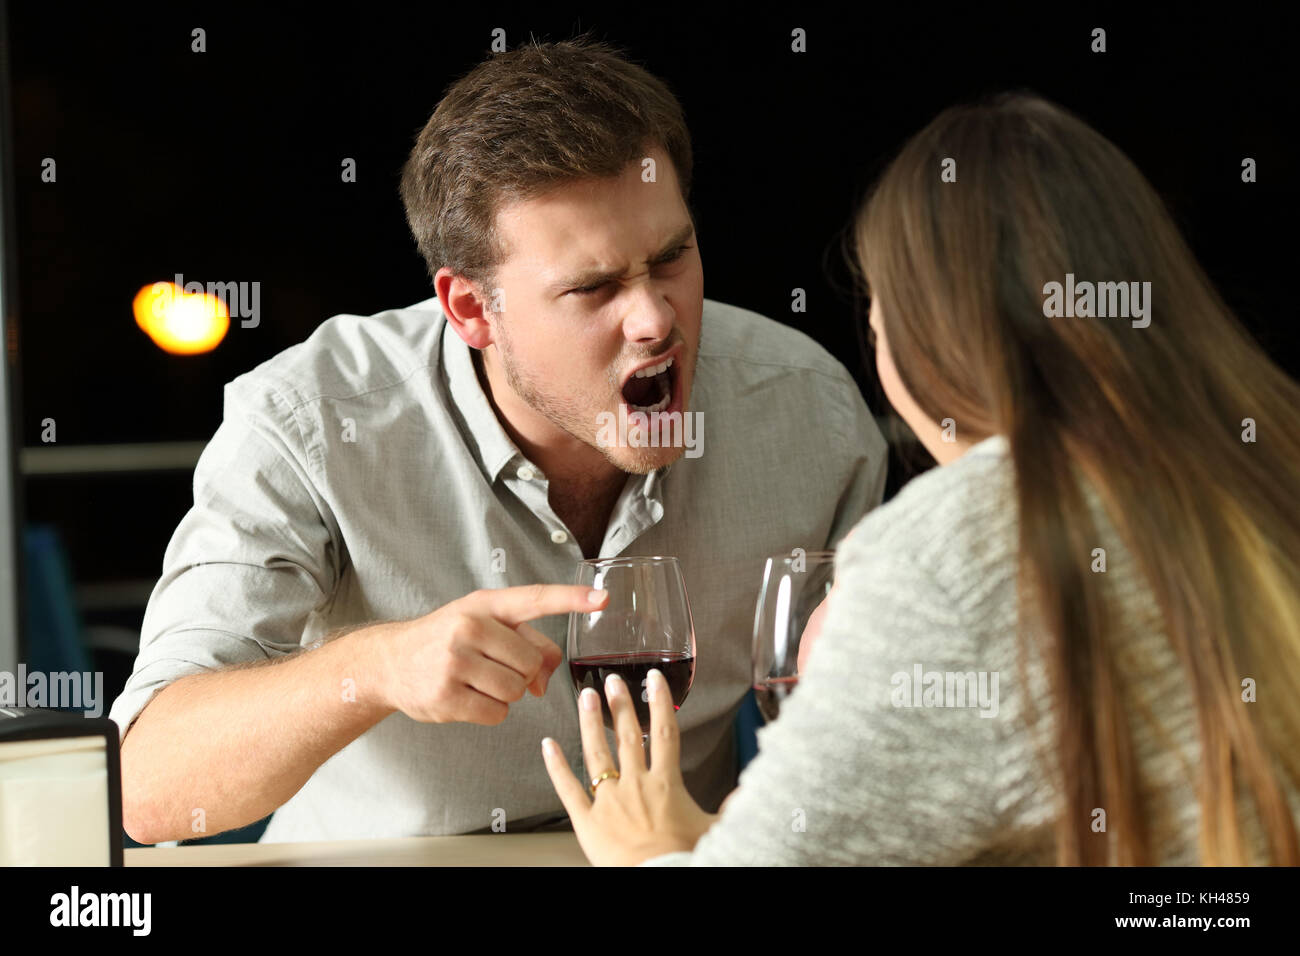 Angry couple arguing furiously in a bar at night - Stock Image